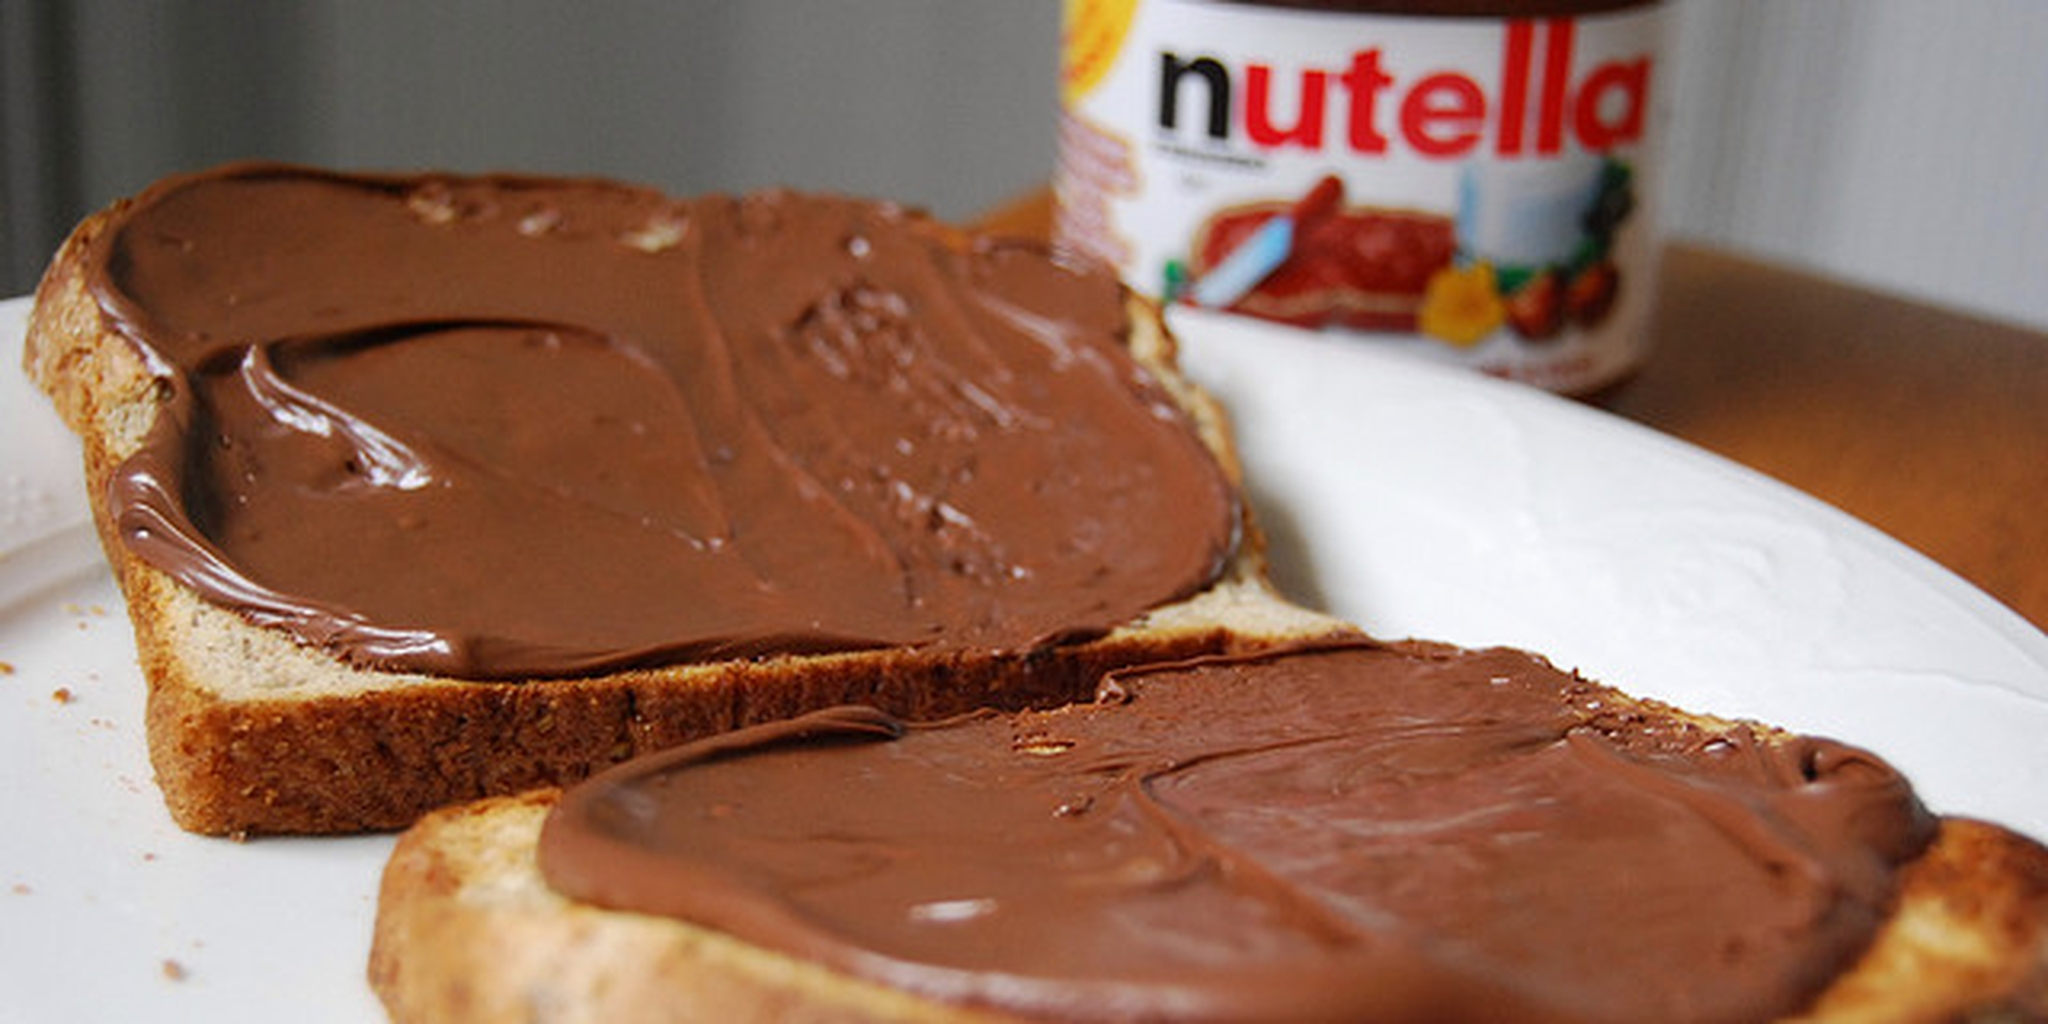 People won't stop eating entire jars of Nutella for YouTube